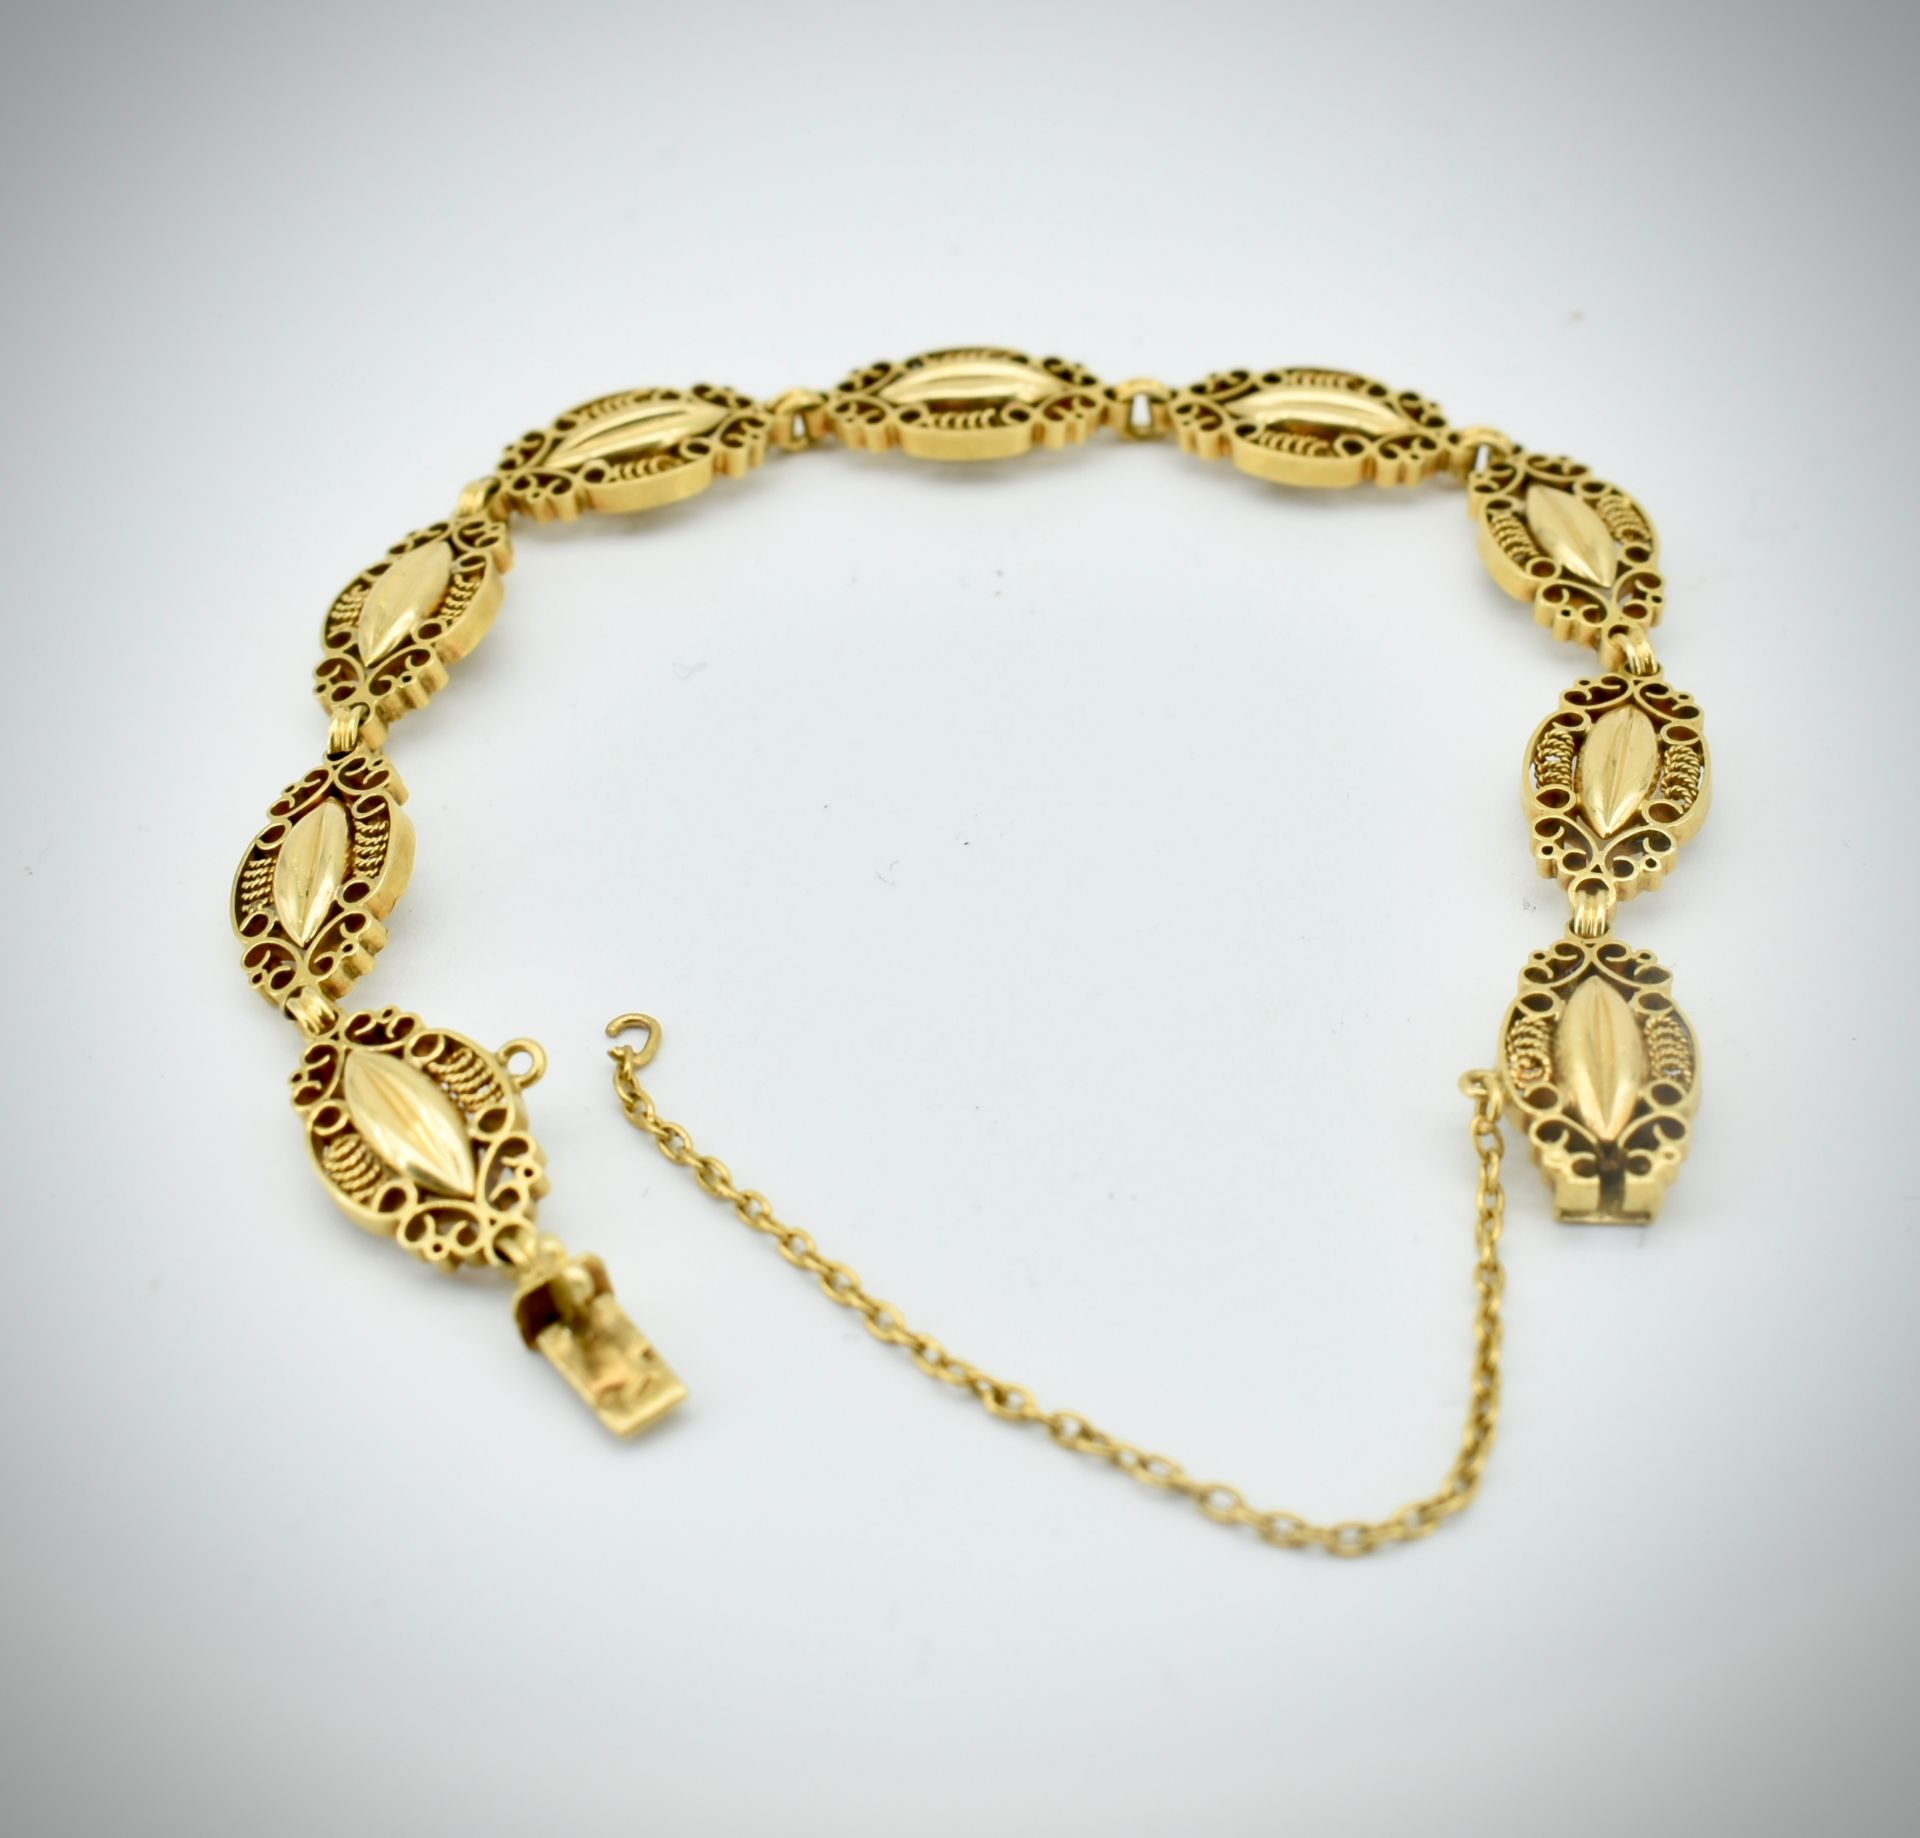 French 18ct Gold Art Nouveau Bracelet. - Image 5 of 6